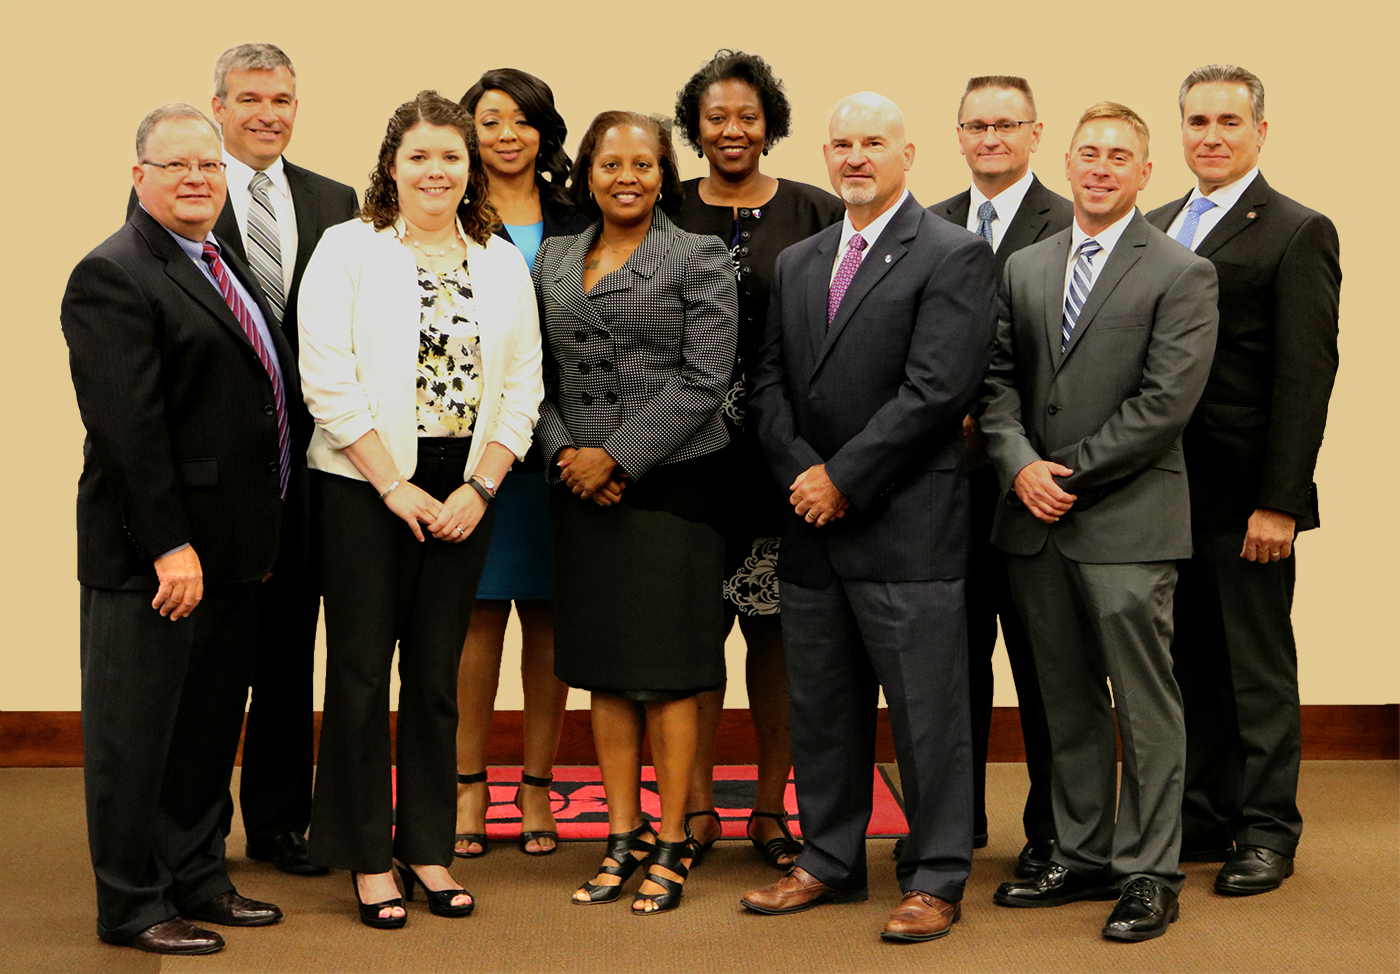 The May 2016 Huntsville class of fellows, from left to right: in the back row, Fred Little, Angela Jones, Ruby Price, Shawn Gresham, Daniel Hernandez; in the front row: Bob Domitrovich, Jennifer Stephenson, Cheryl Hickman, Noel Paschal, Nate Curry. The fellowship, designed to cultivate civilian acquisition leadership by offering educational and professional development opportunities similar to those available to military personnel, is offered at Huntsville, Alabama, Warren, Michigan, and Aberdeen, Maryland.